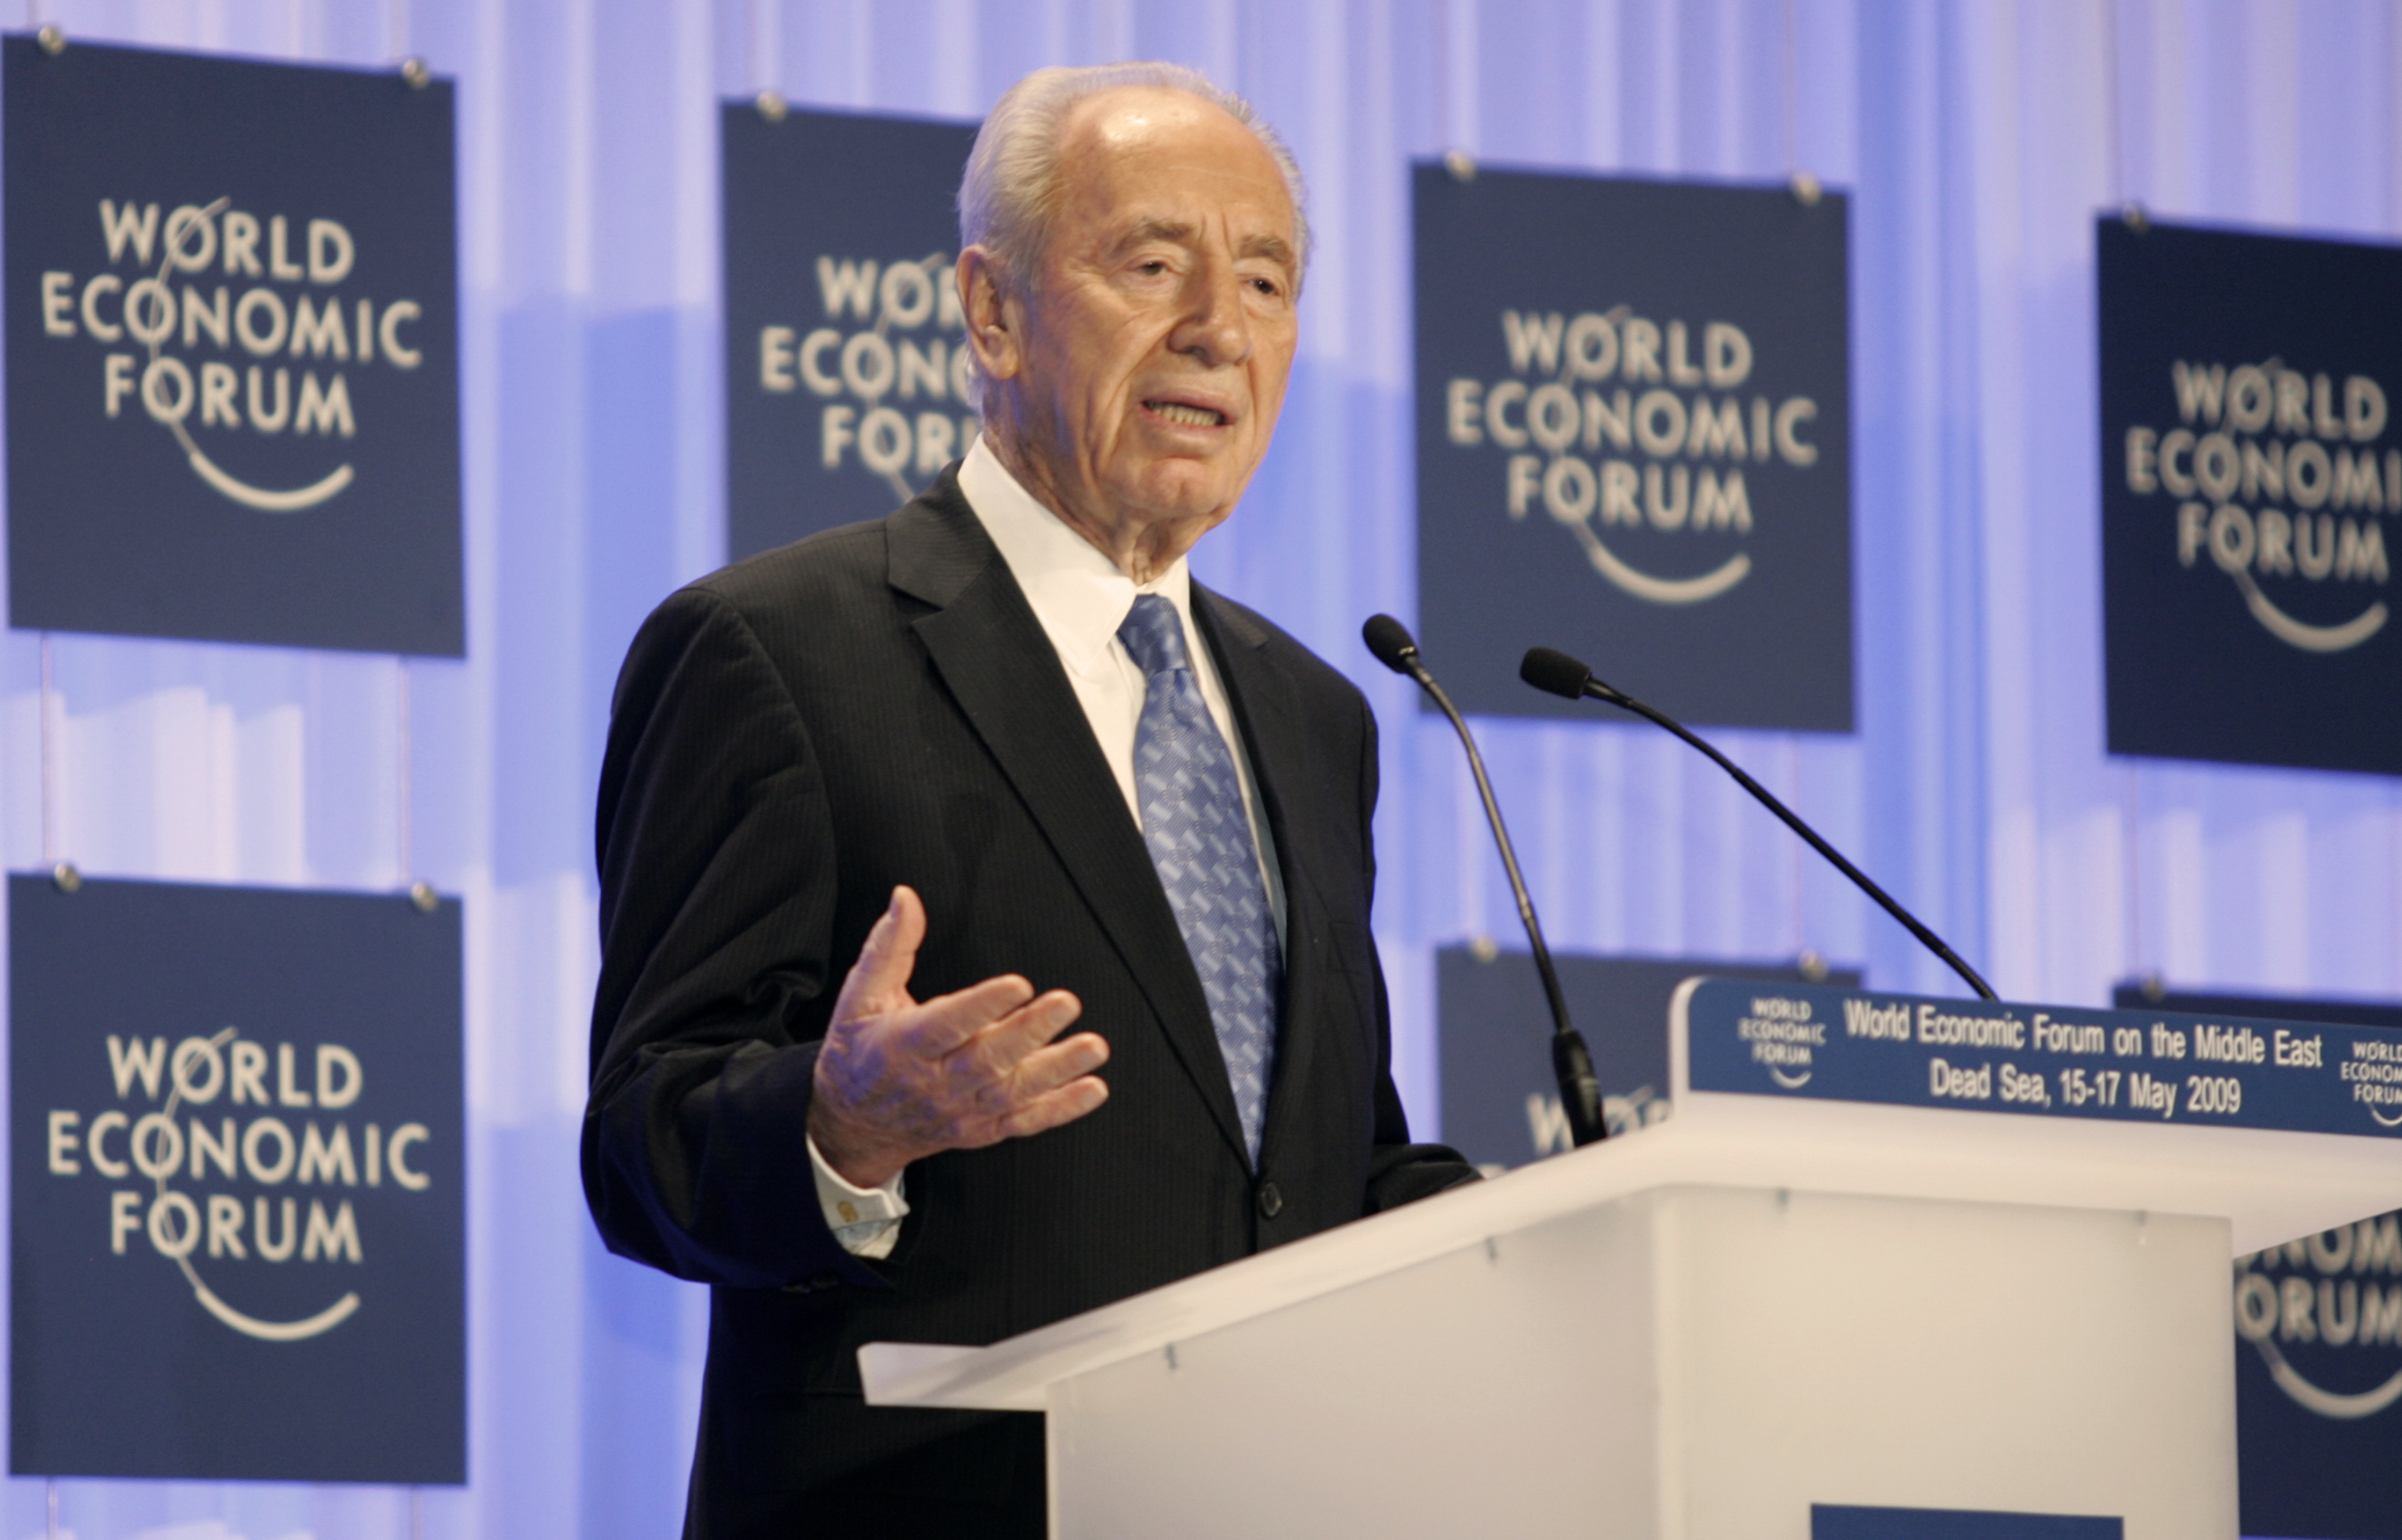 """DEAD SEA/JORDAN,17MAY09 -Shimon Peres, Presedint of Israel captured during the World Economic Forum on the Middle East at the Dead Sea in Jordan, May 17, 2009. Copyright èa href=""""http://www.weforum.org"""">World Economic Forum[/a] (èa href=""""http://www.weforum.org"""">www.weforum.org[/a])/Photo by  Nader Daoud"""